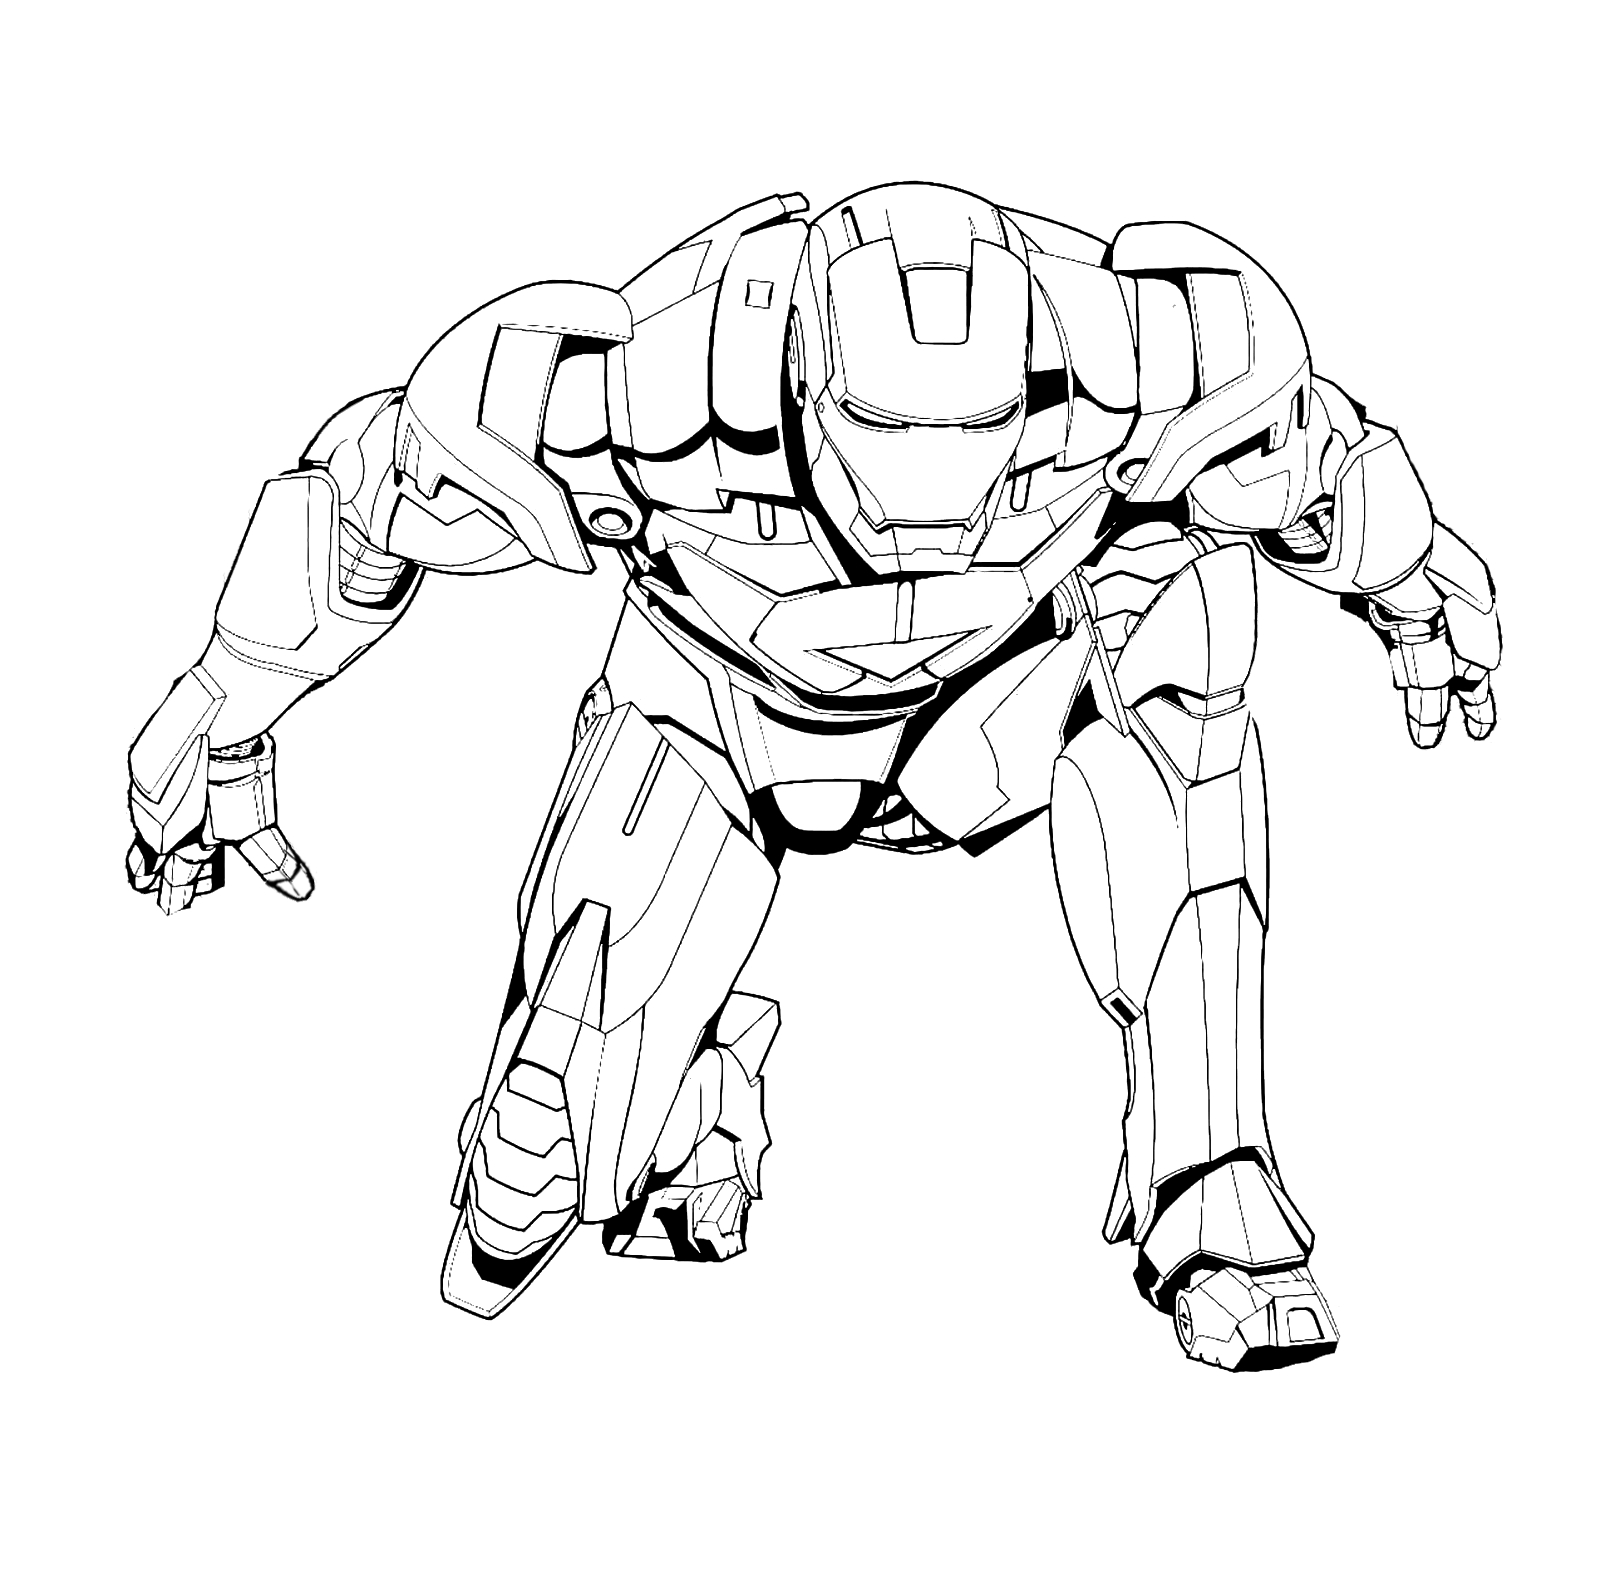 Iron Man Coloring Pages - Iron Man Iron Man atterrato Con La Sua Possente Armatura